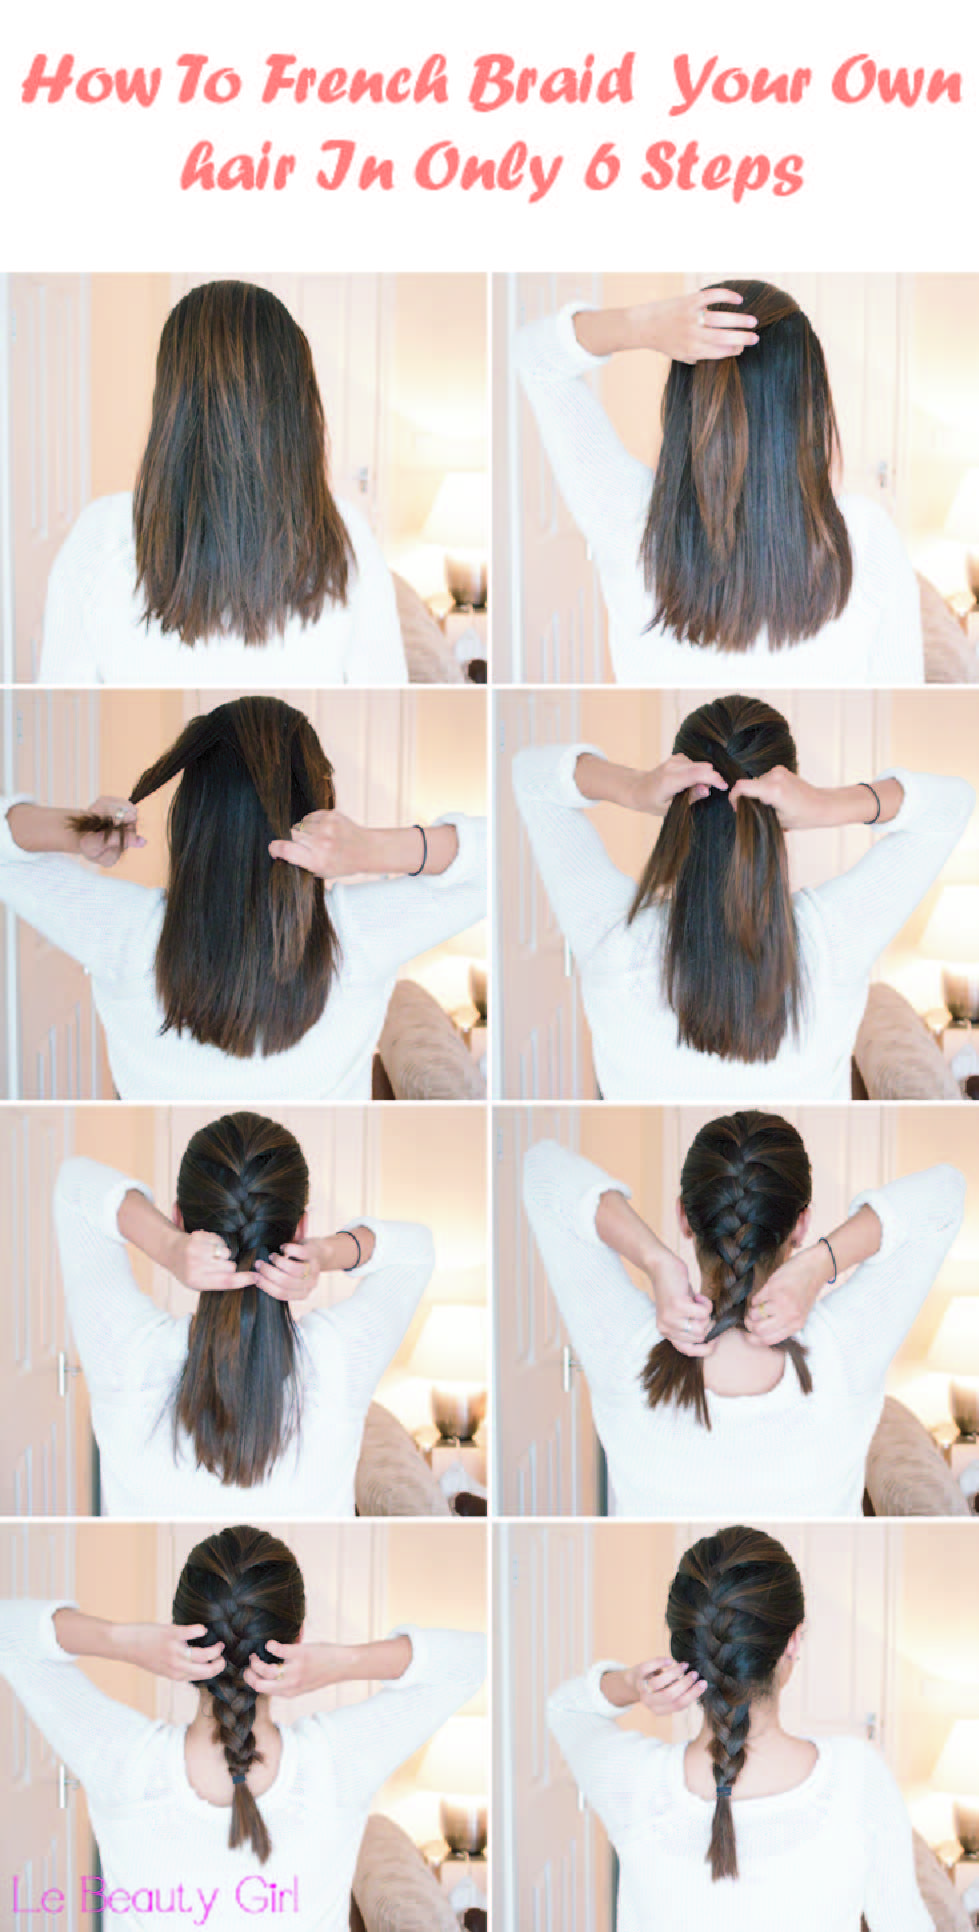 Fancy French braids? Want to know how to french braid your hair